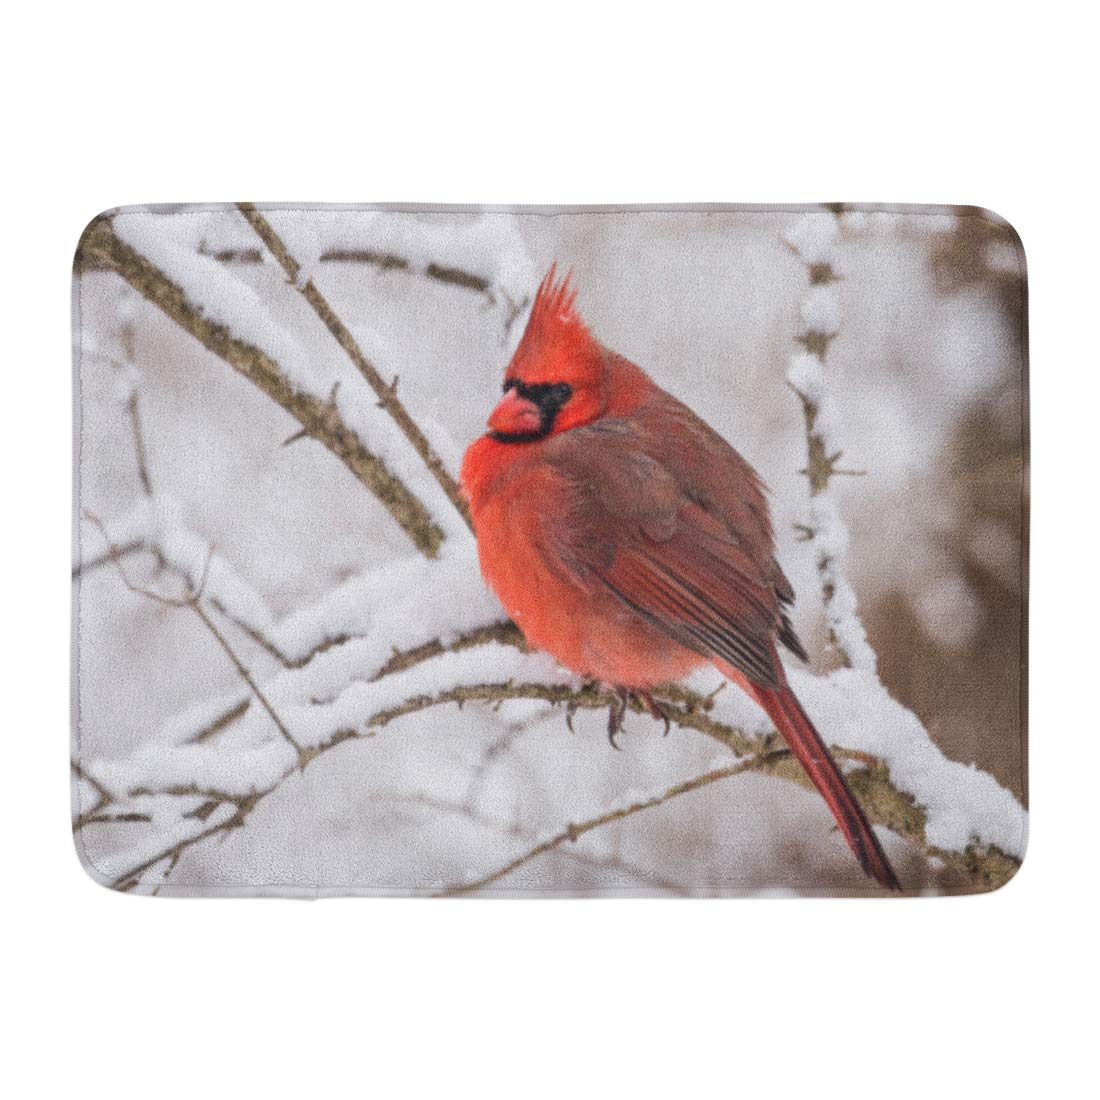 GODPOK Christmas Red Animal Northern Cardinal in The Snow White Bird Cold Rug Doormat Bath Mat 23.6x15.7 inch